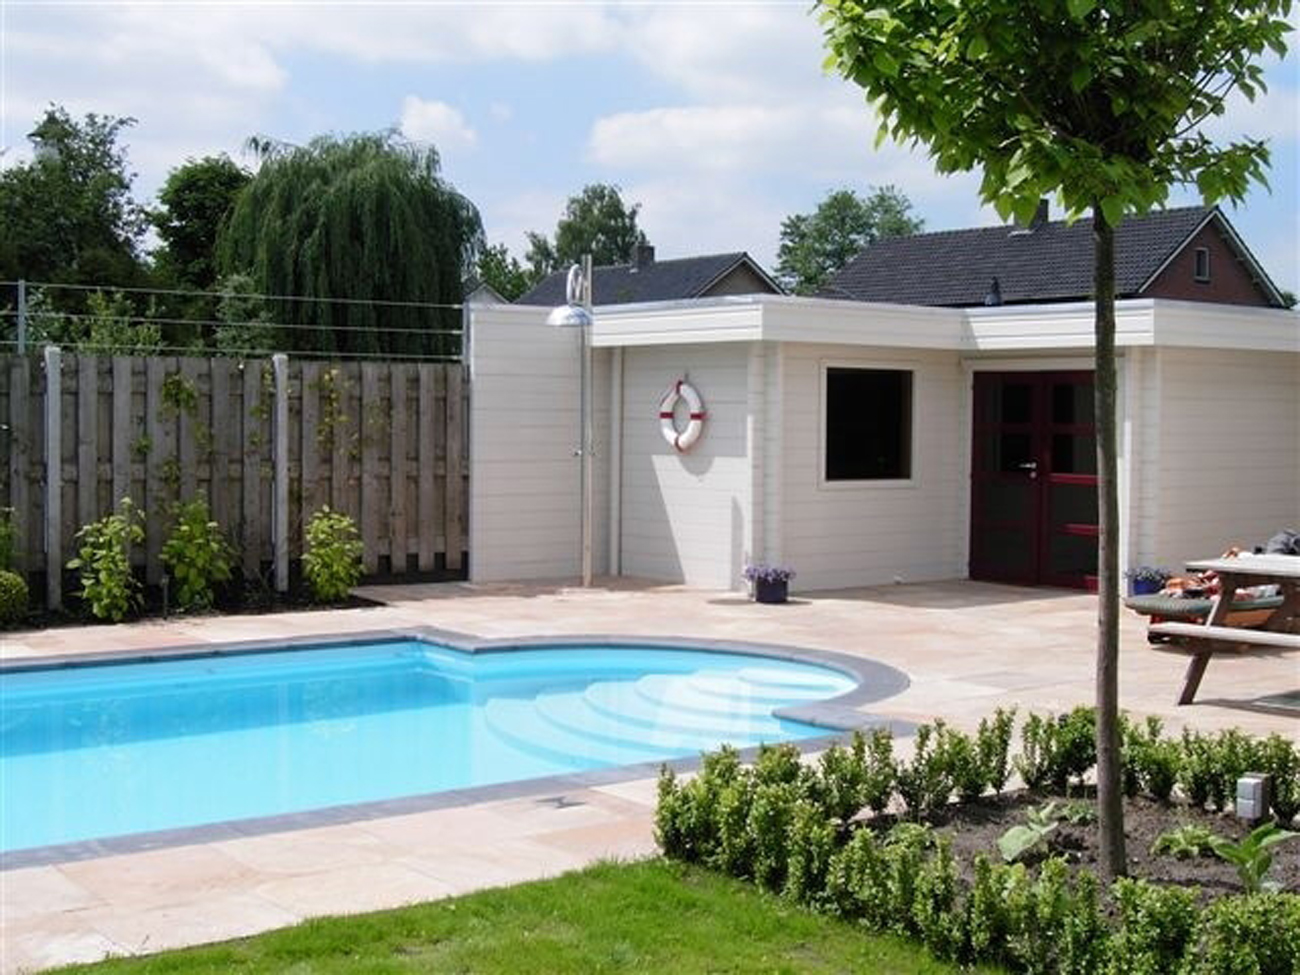 Gamme modern lorenne contructions - Photos pool house piscine ...